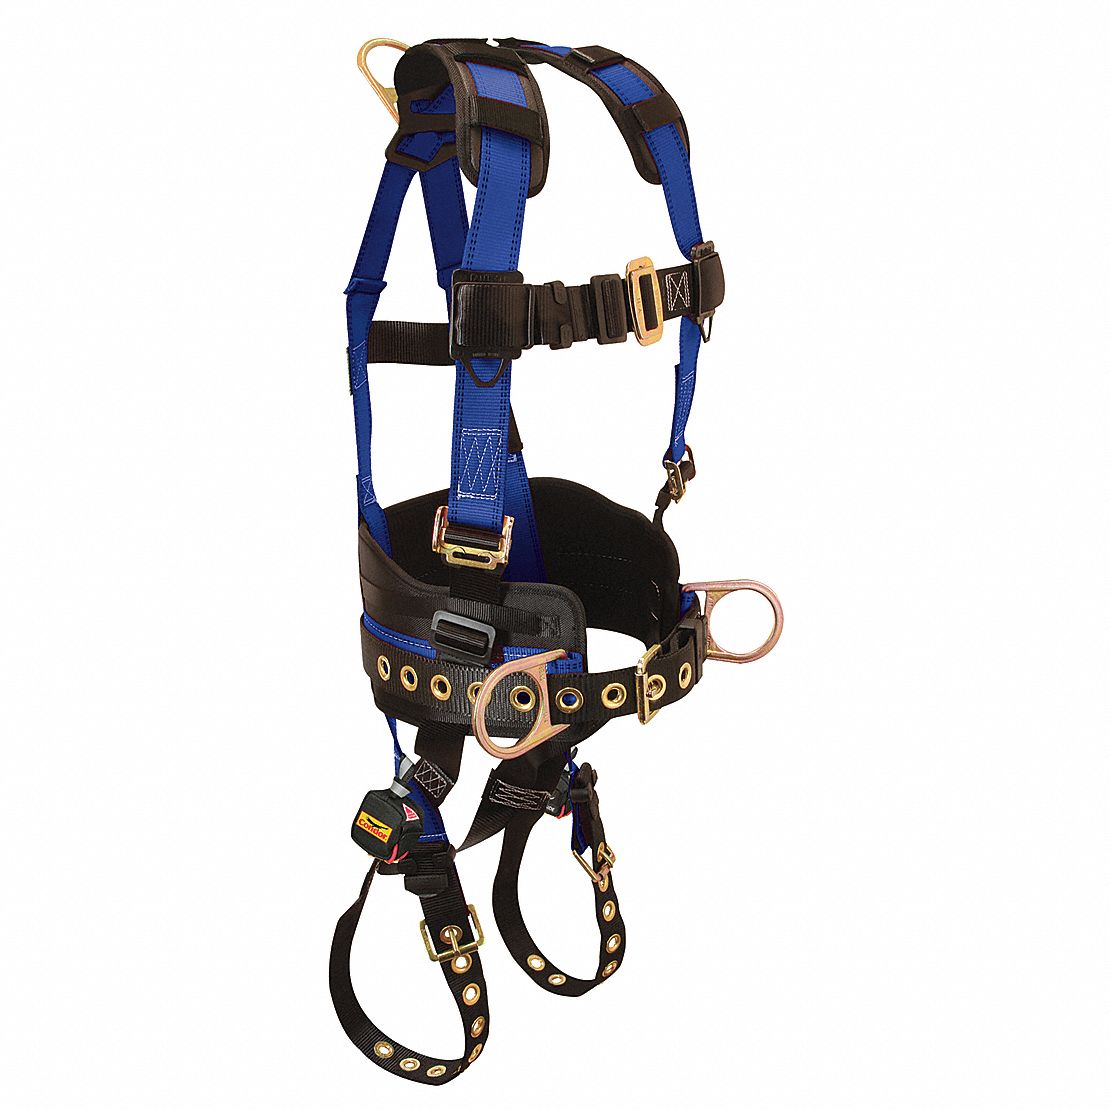 Harnesses and Body Belts